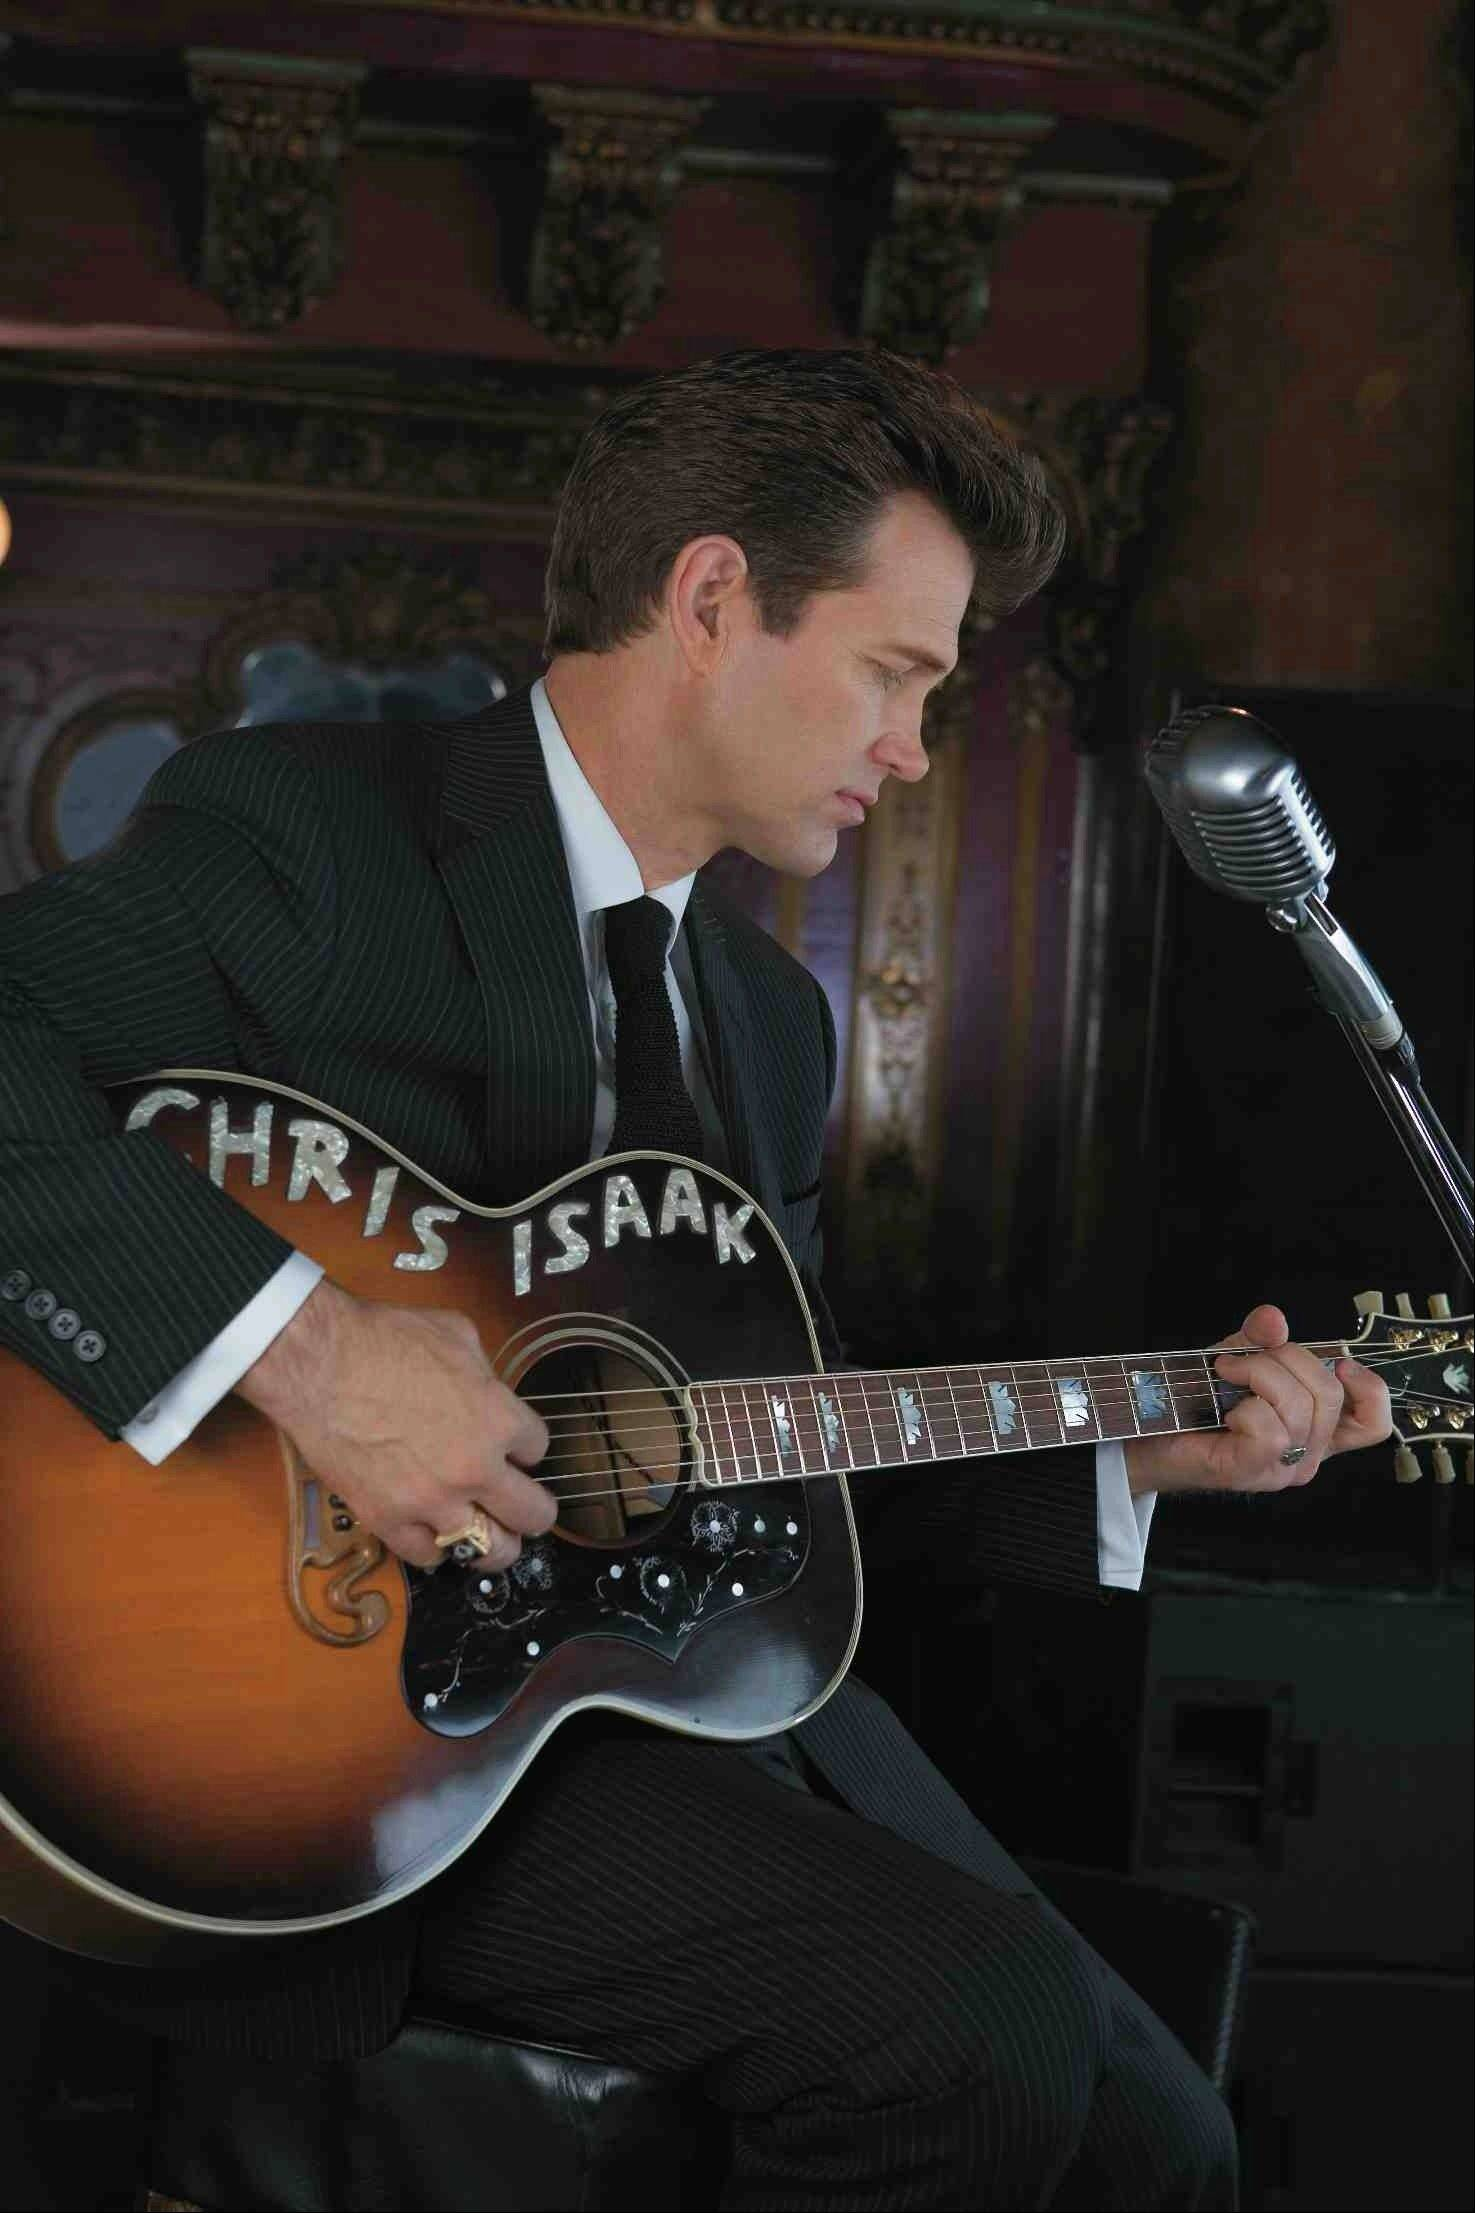 Chris Isaak headlines the Arcada Theatre in St. Charles on Friday, July 19.